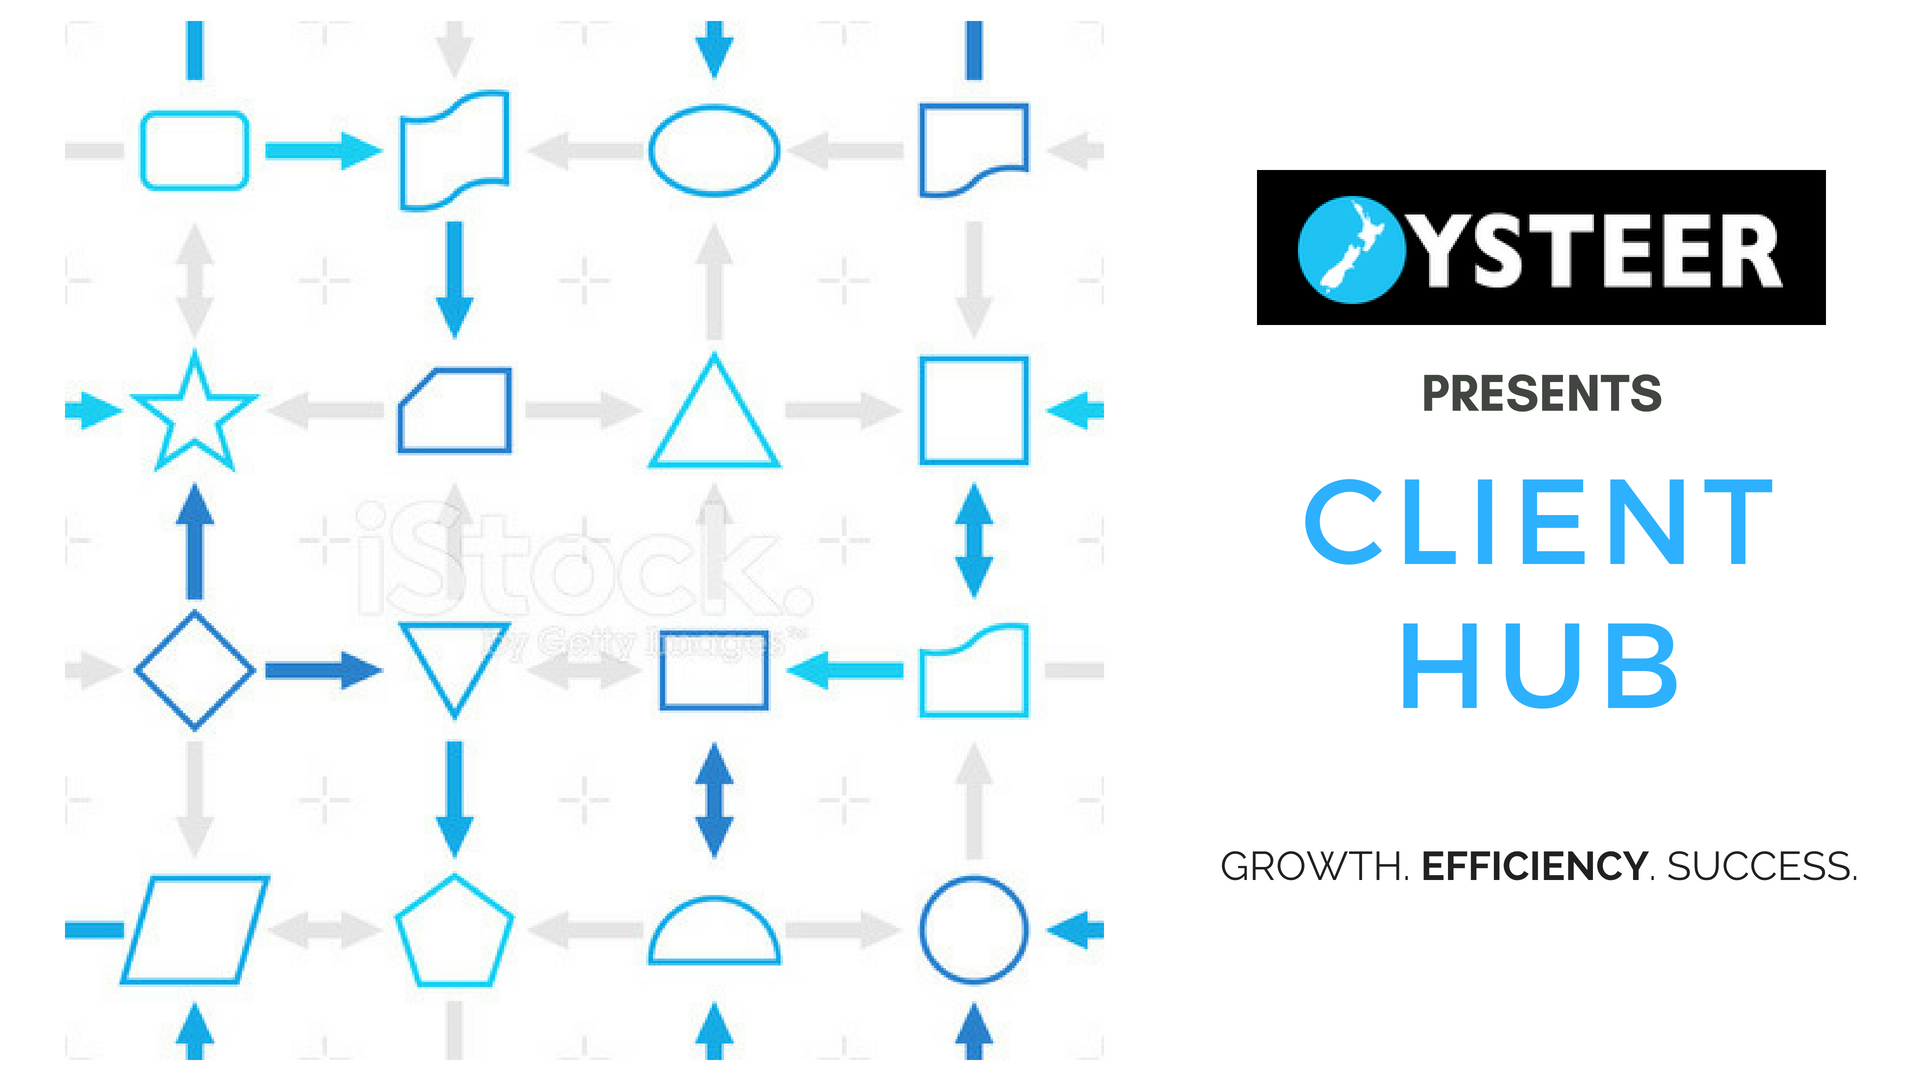 Client Hub: Amplifying Your Oysteer Client Experience